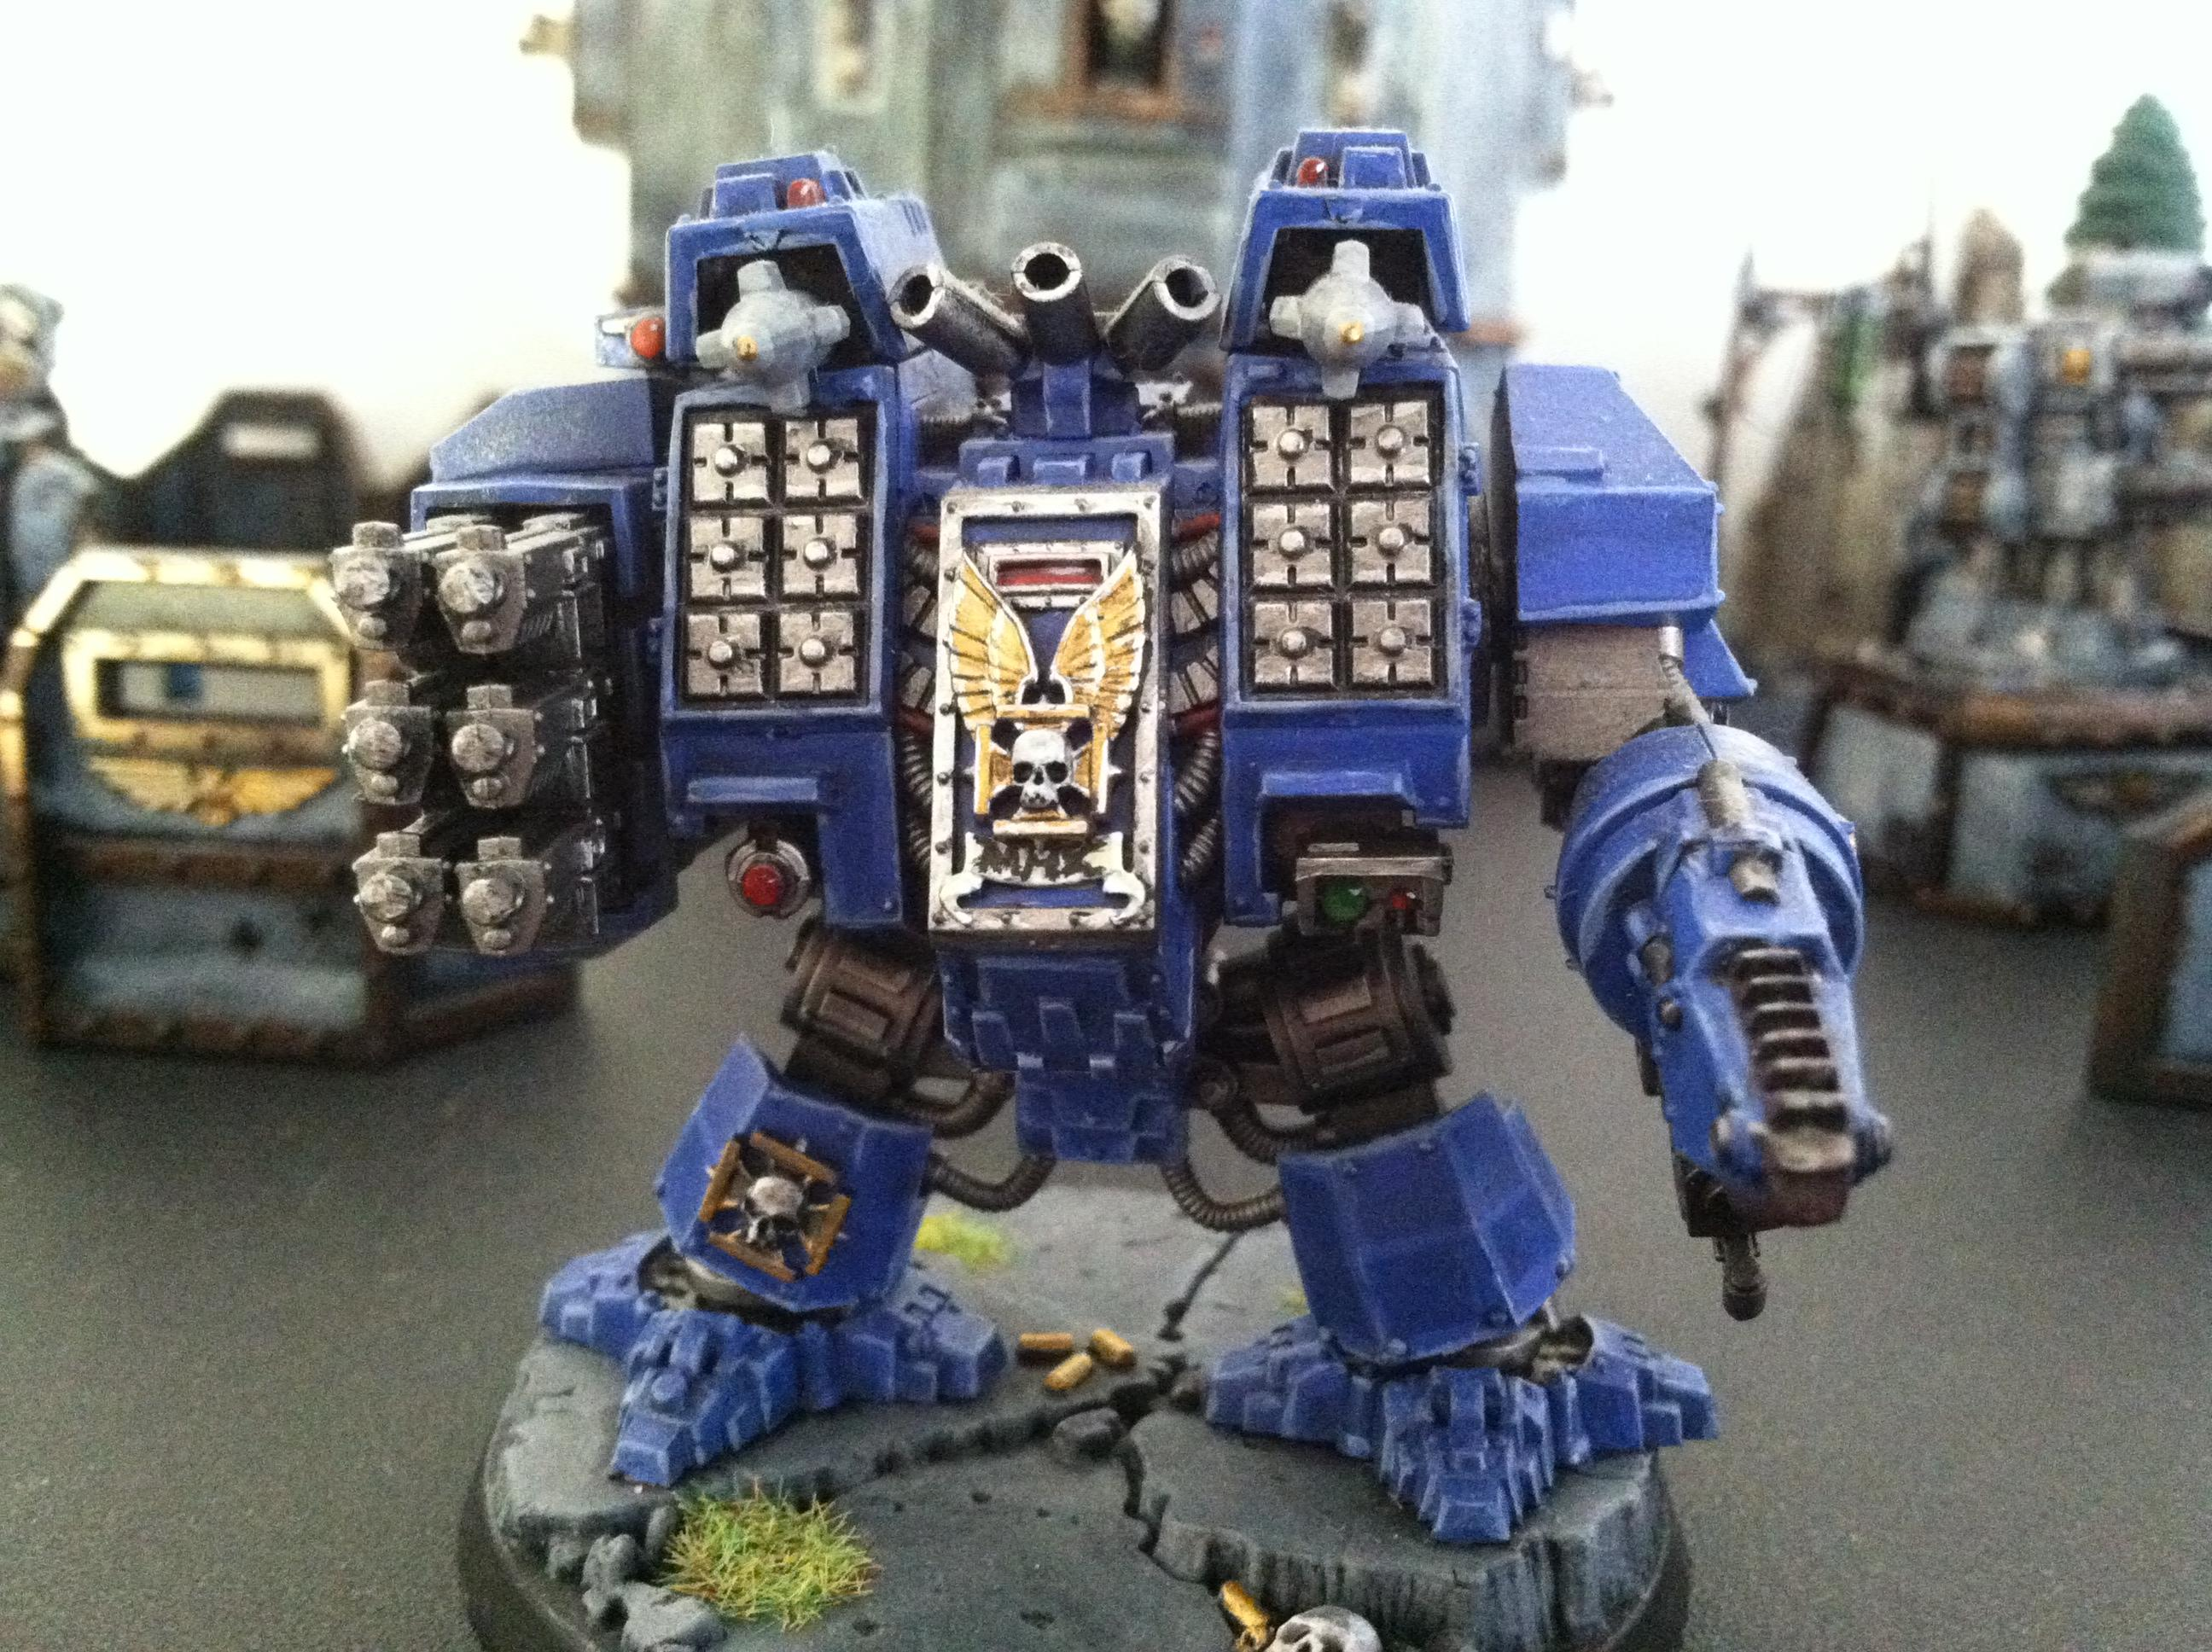 Dreadnought, Ironclad, Space Marines, Ultramarines, Warhammer 40,000